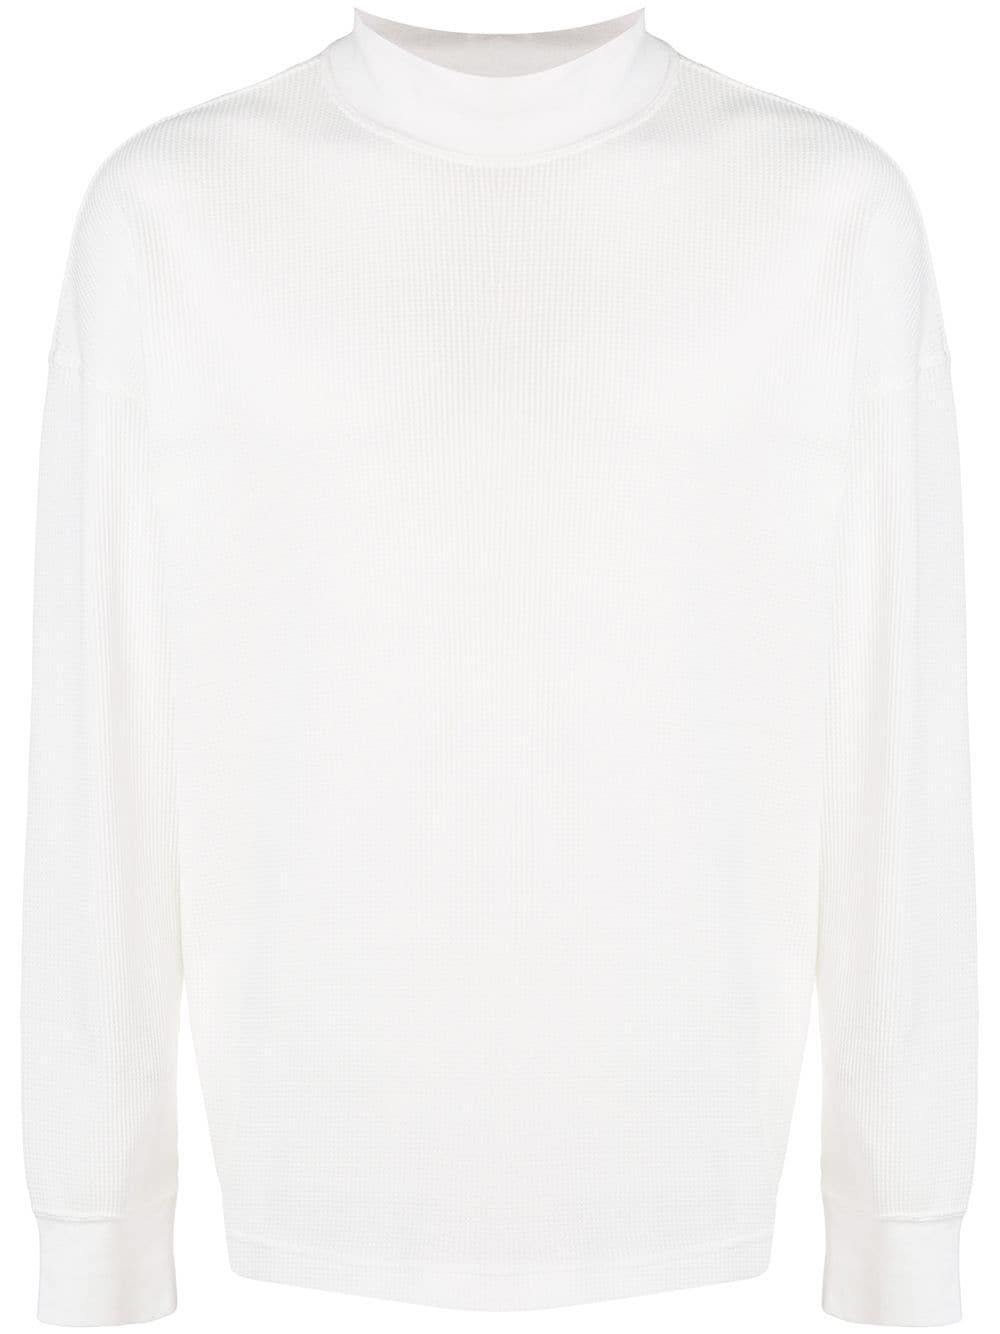 N.hoolywood Oversized High In White